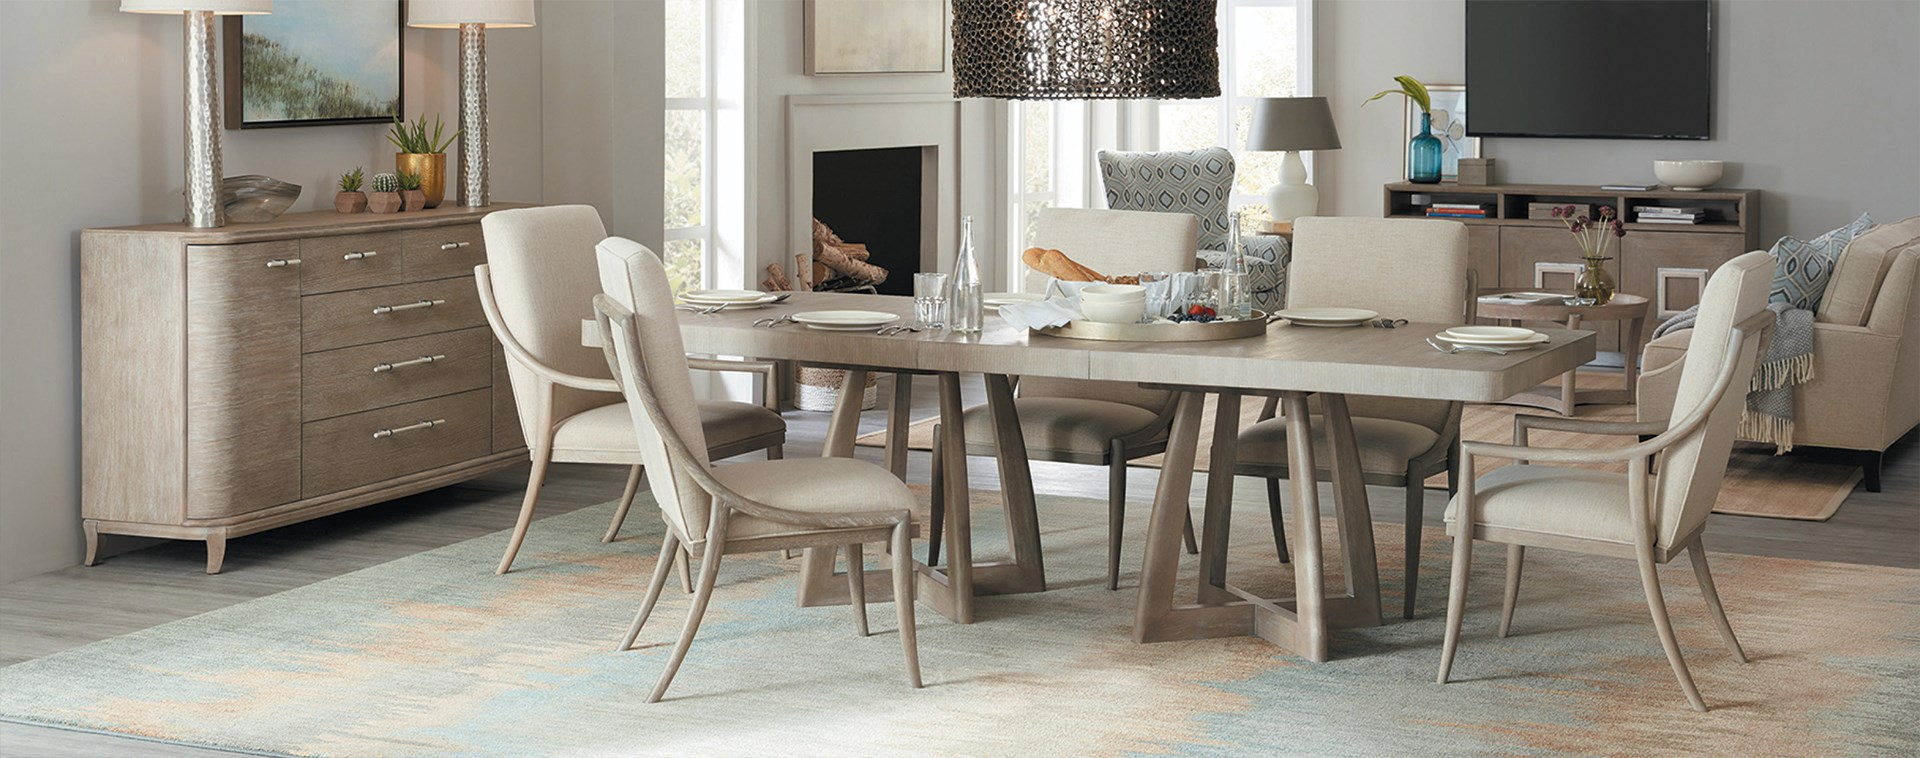 Alison Craig Dining Room Collection